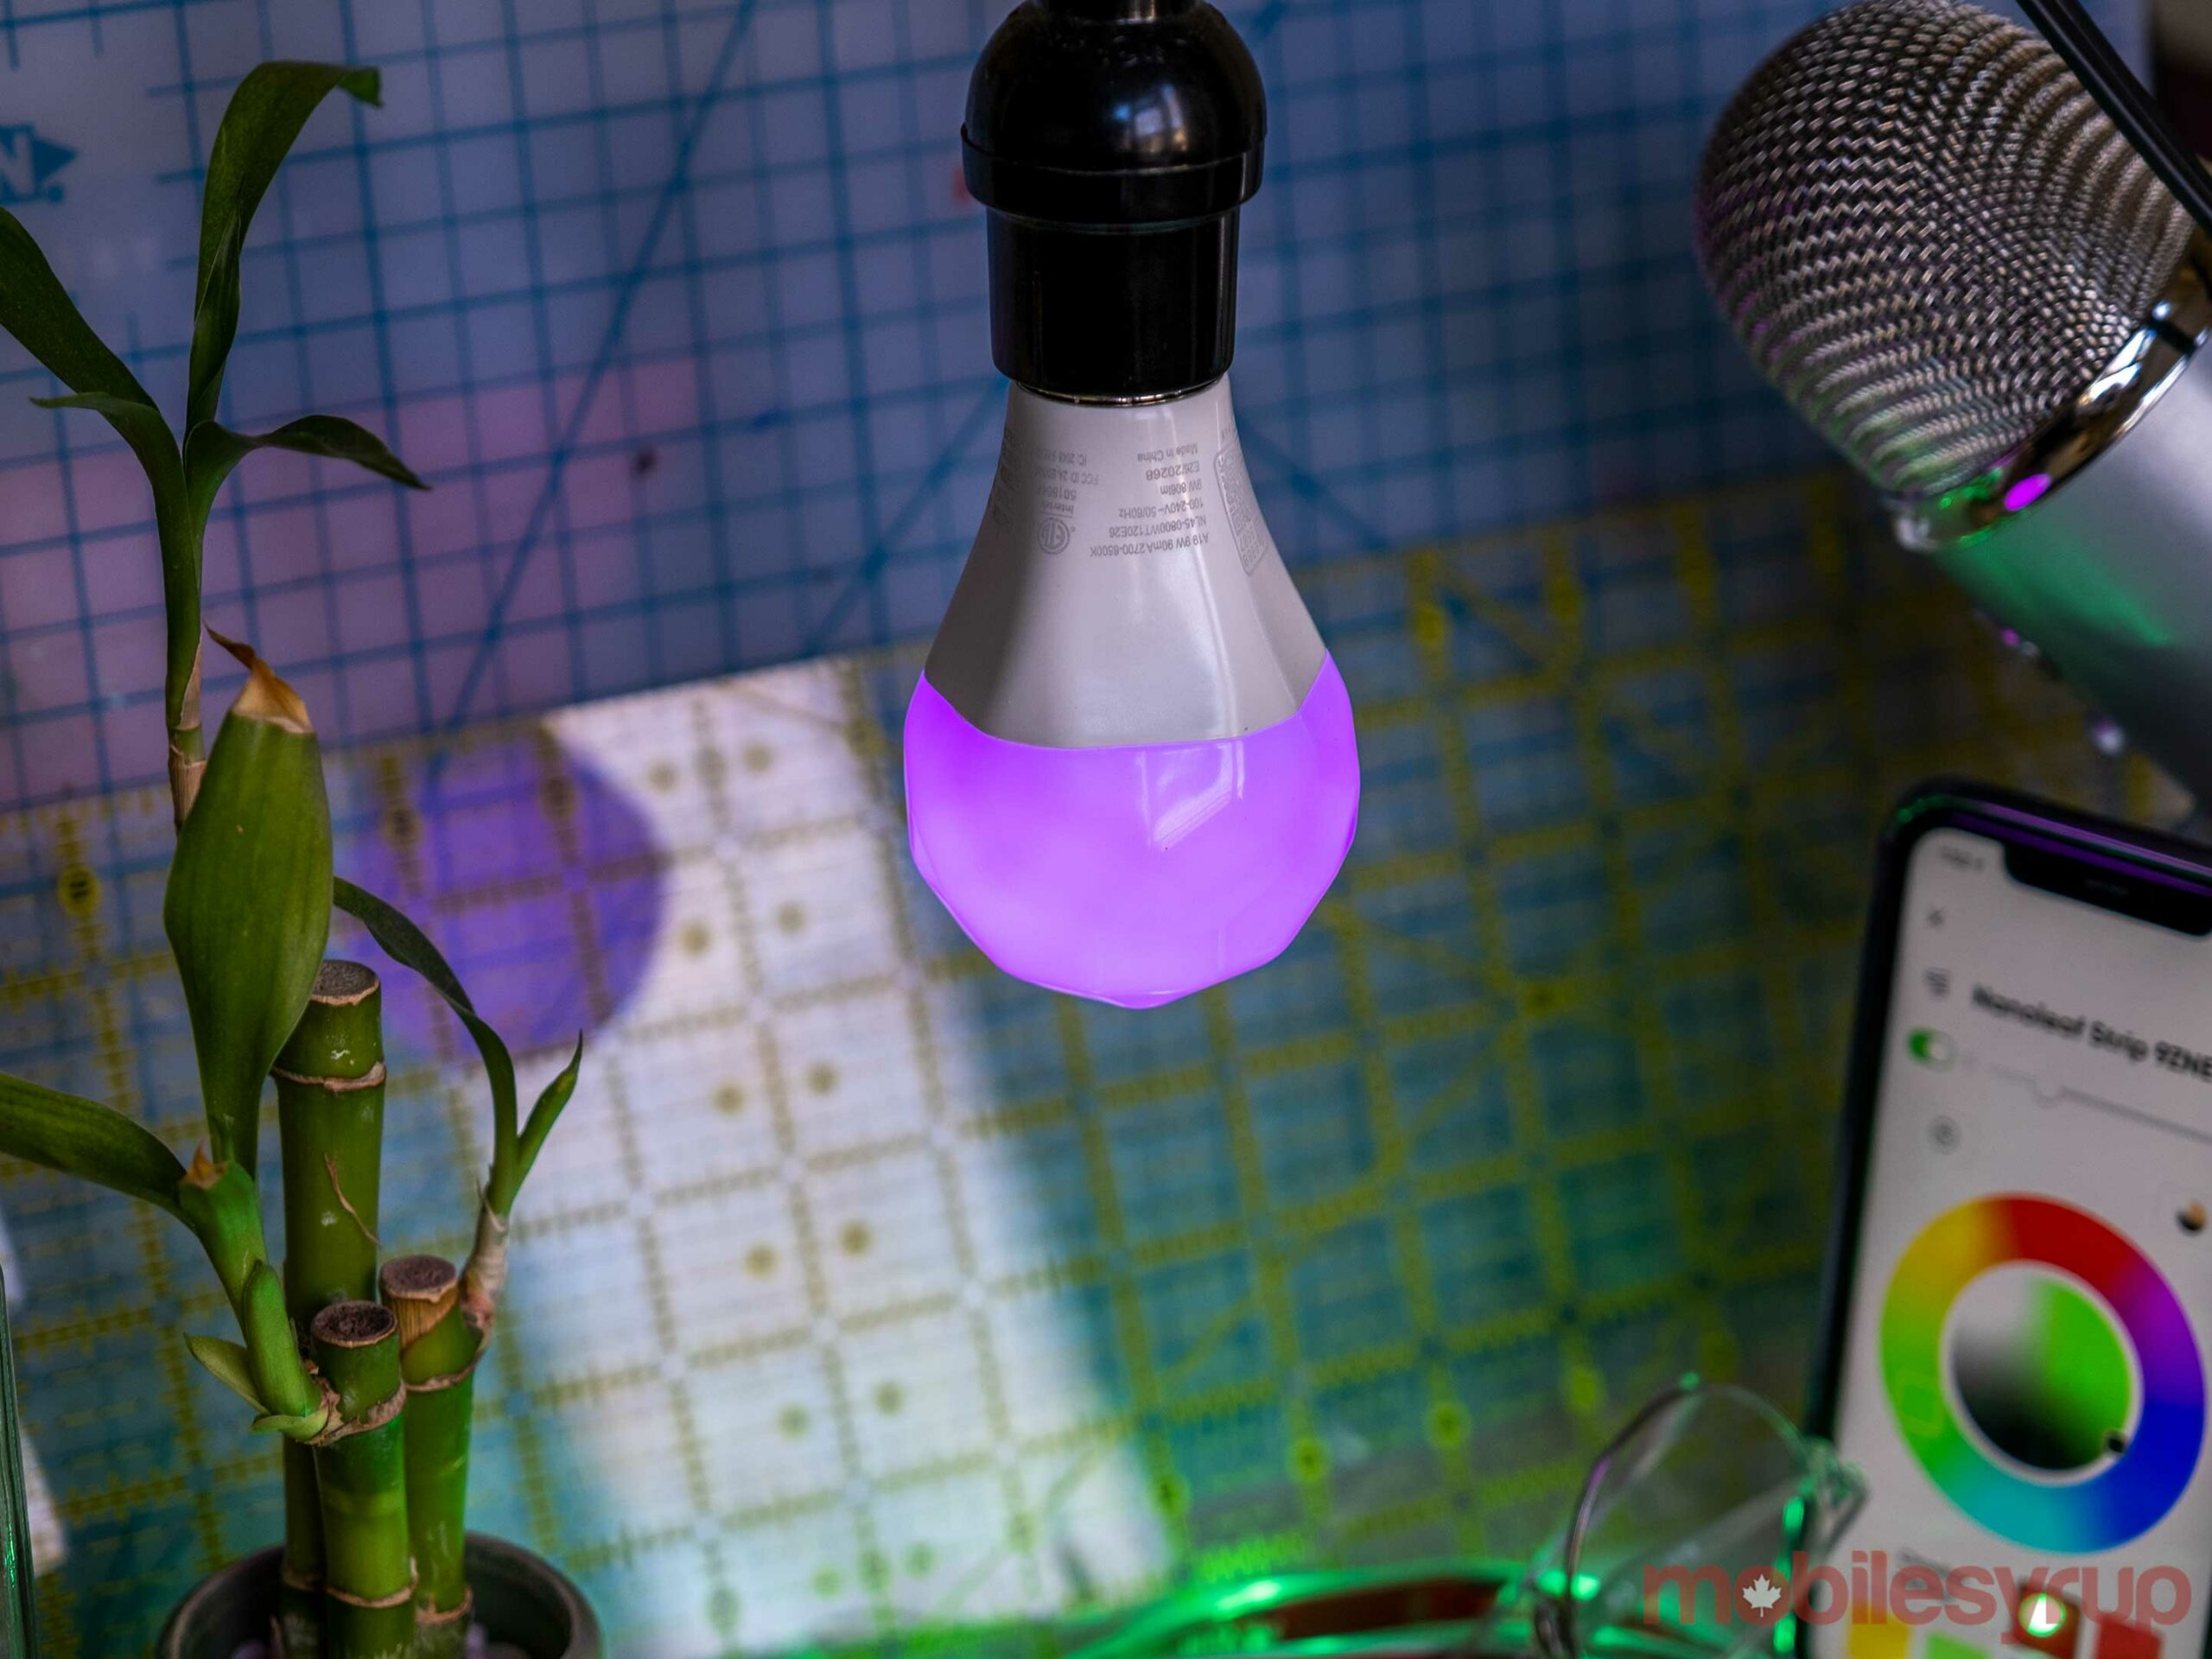 Nanoleaf Essentials get me excited for more smart bulbs from the company